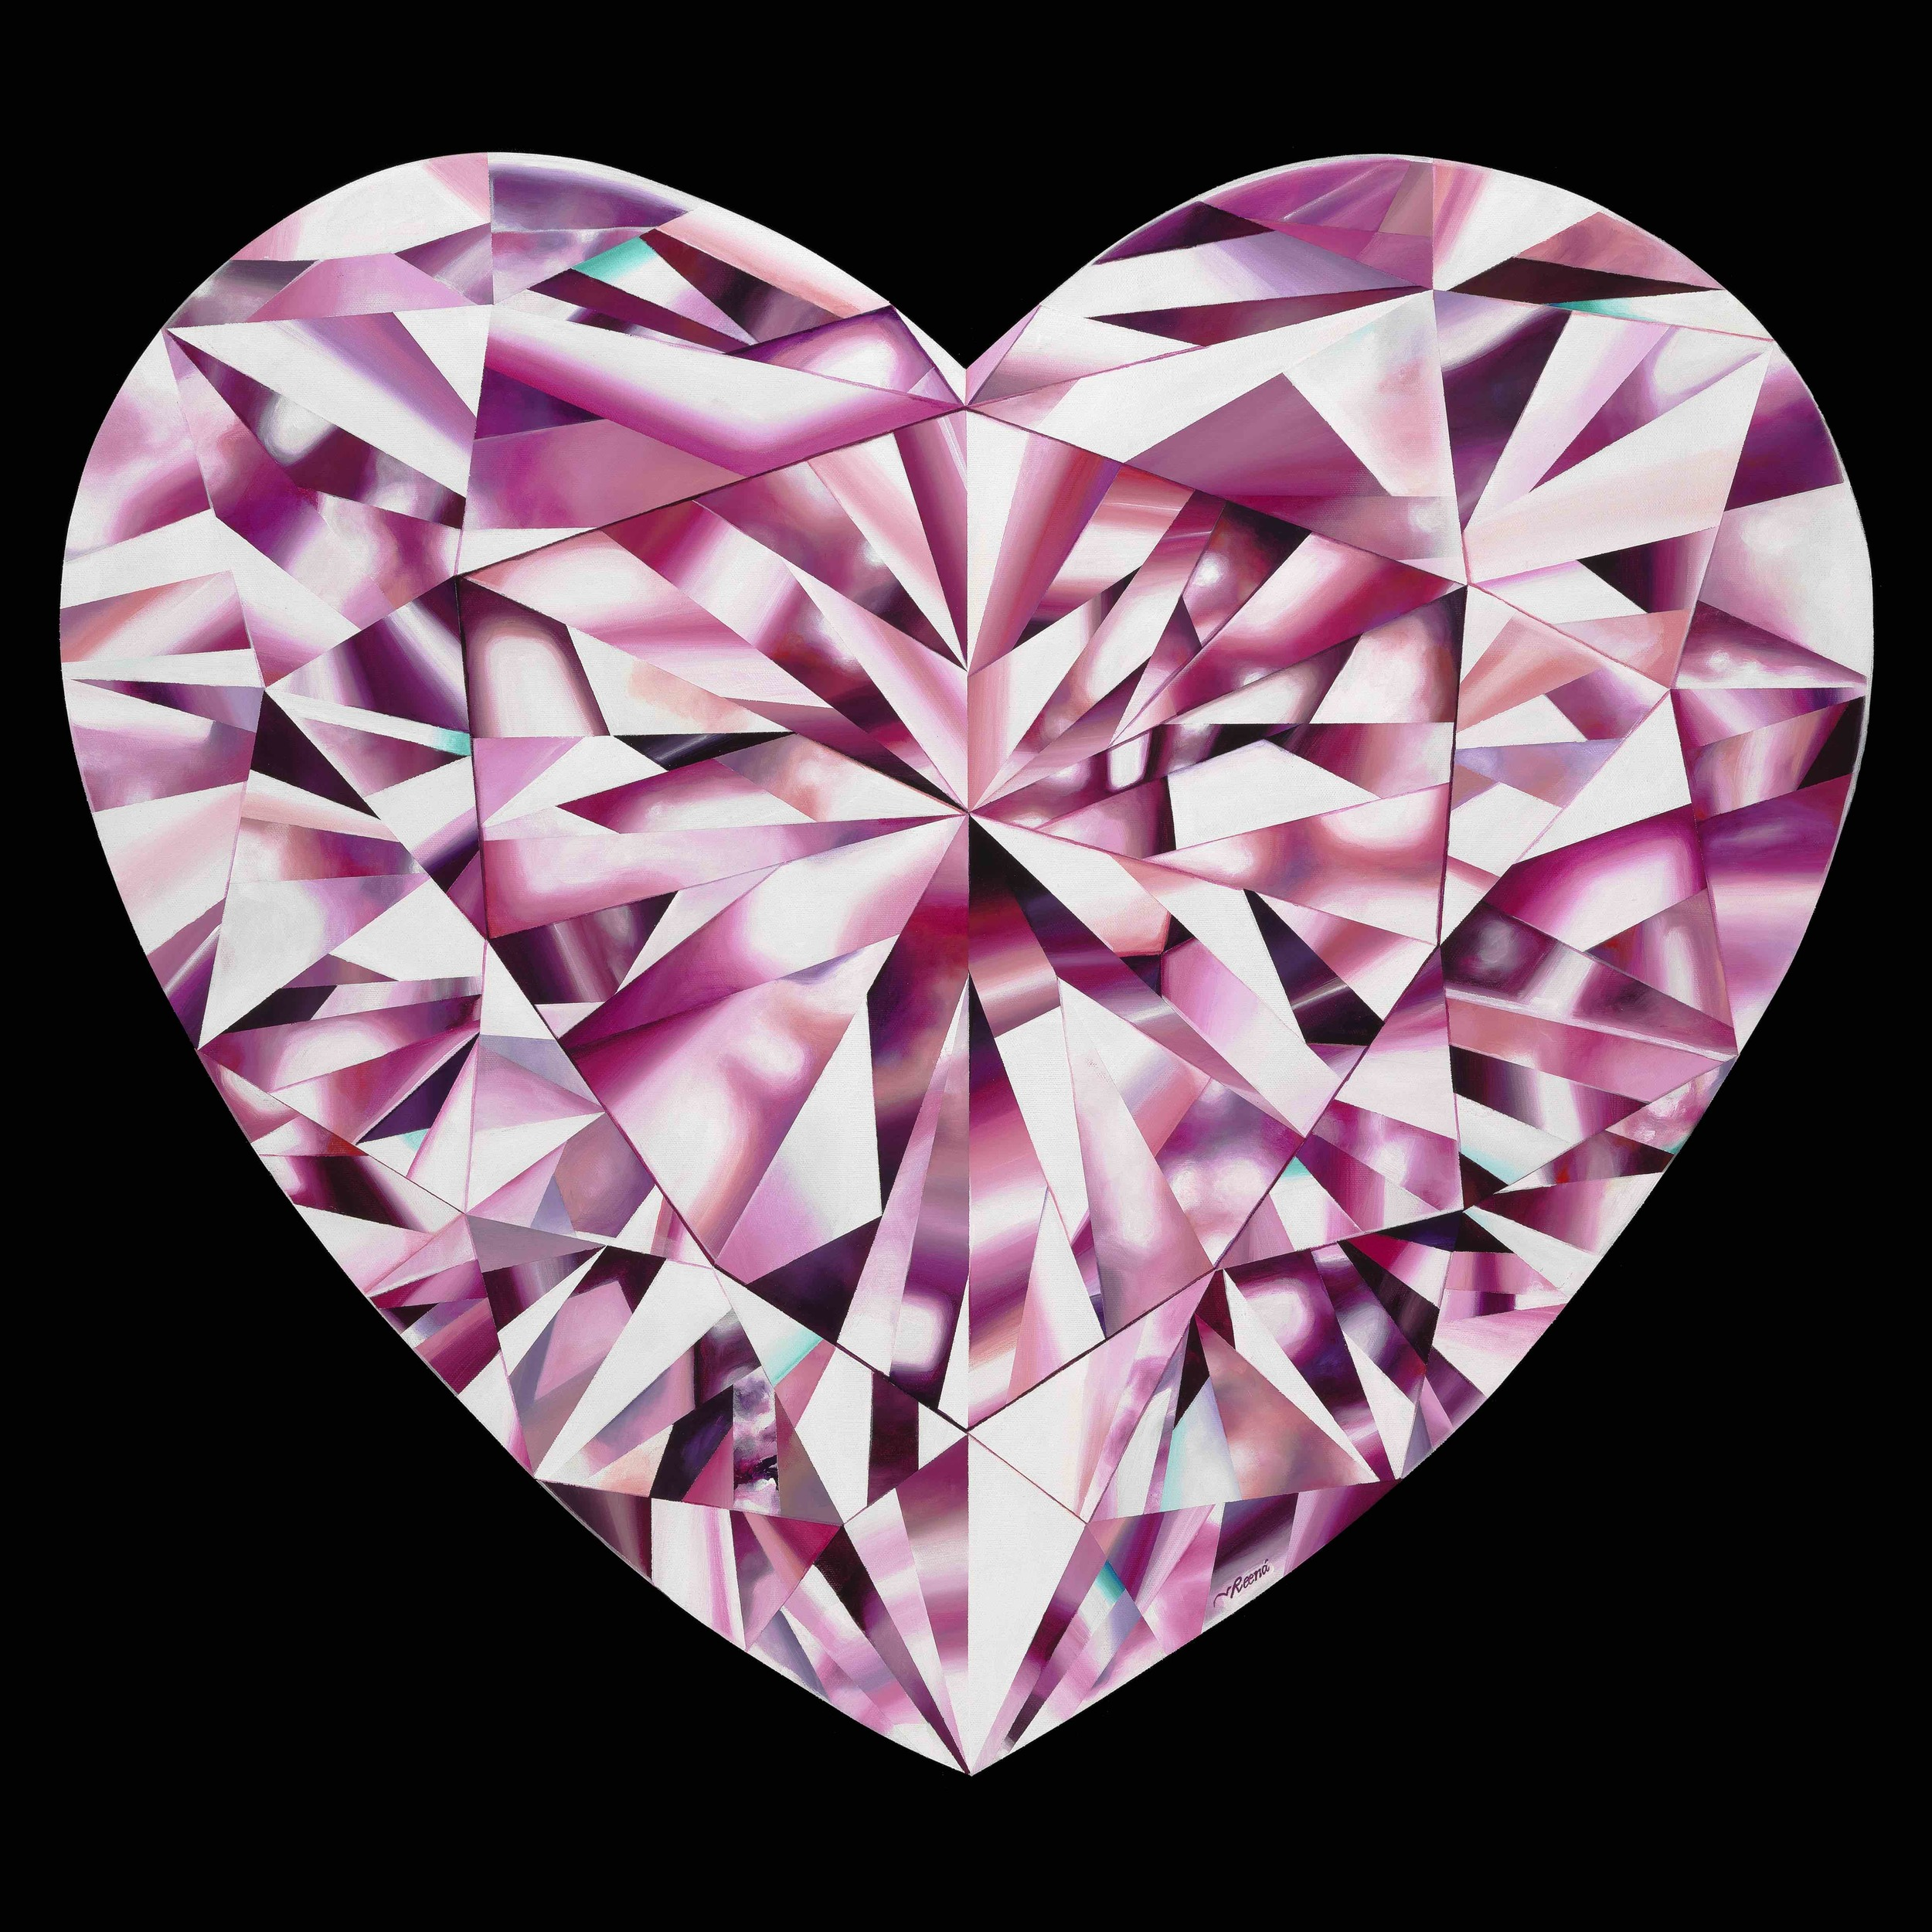 'Passionate Heart' - Portrait of a Pink Heart-Shaped Diamond. 36 x 36 inches. Acrylic on Canvas. ©Reena Ahluwalia.    More about the painting here   .